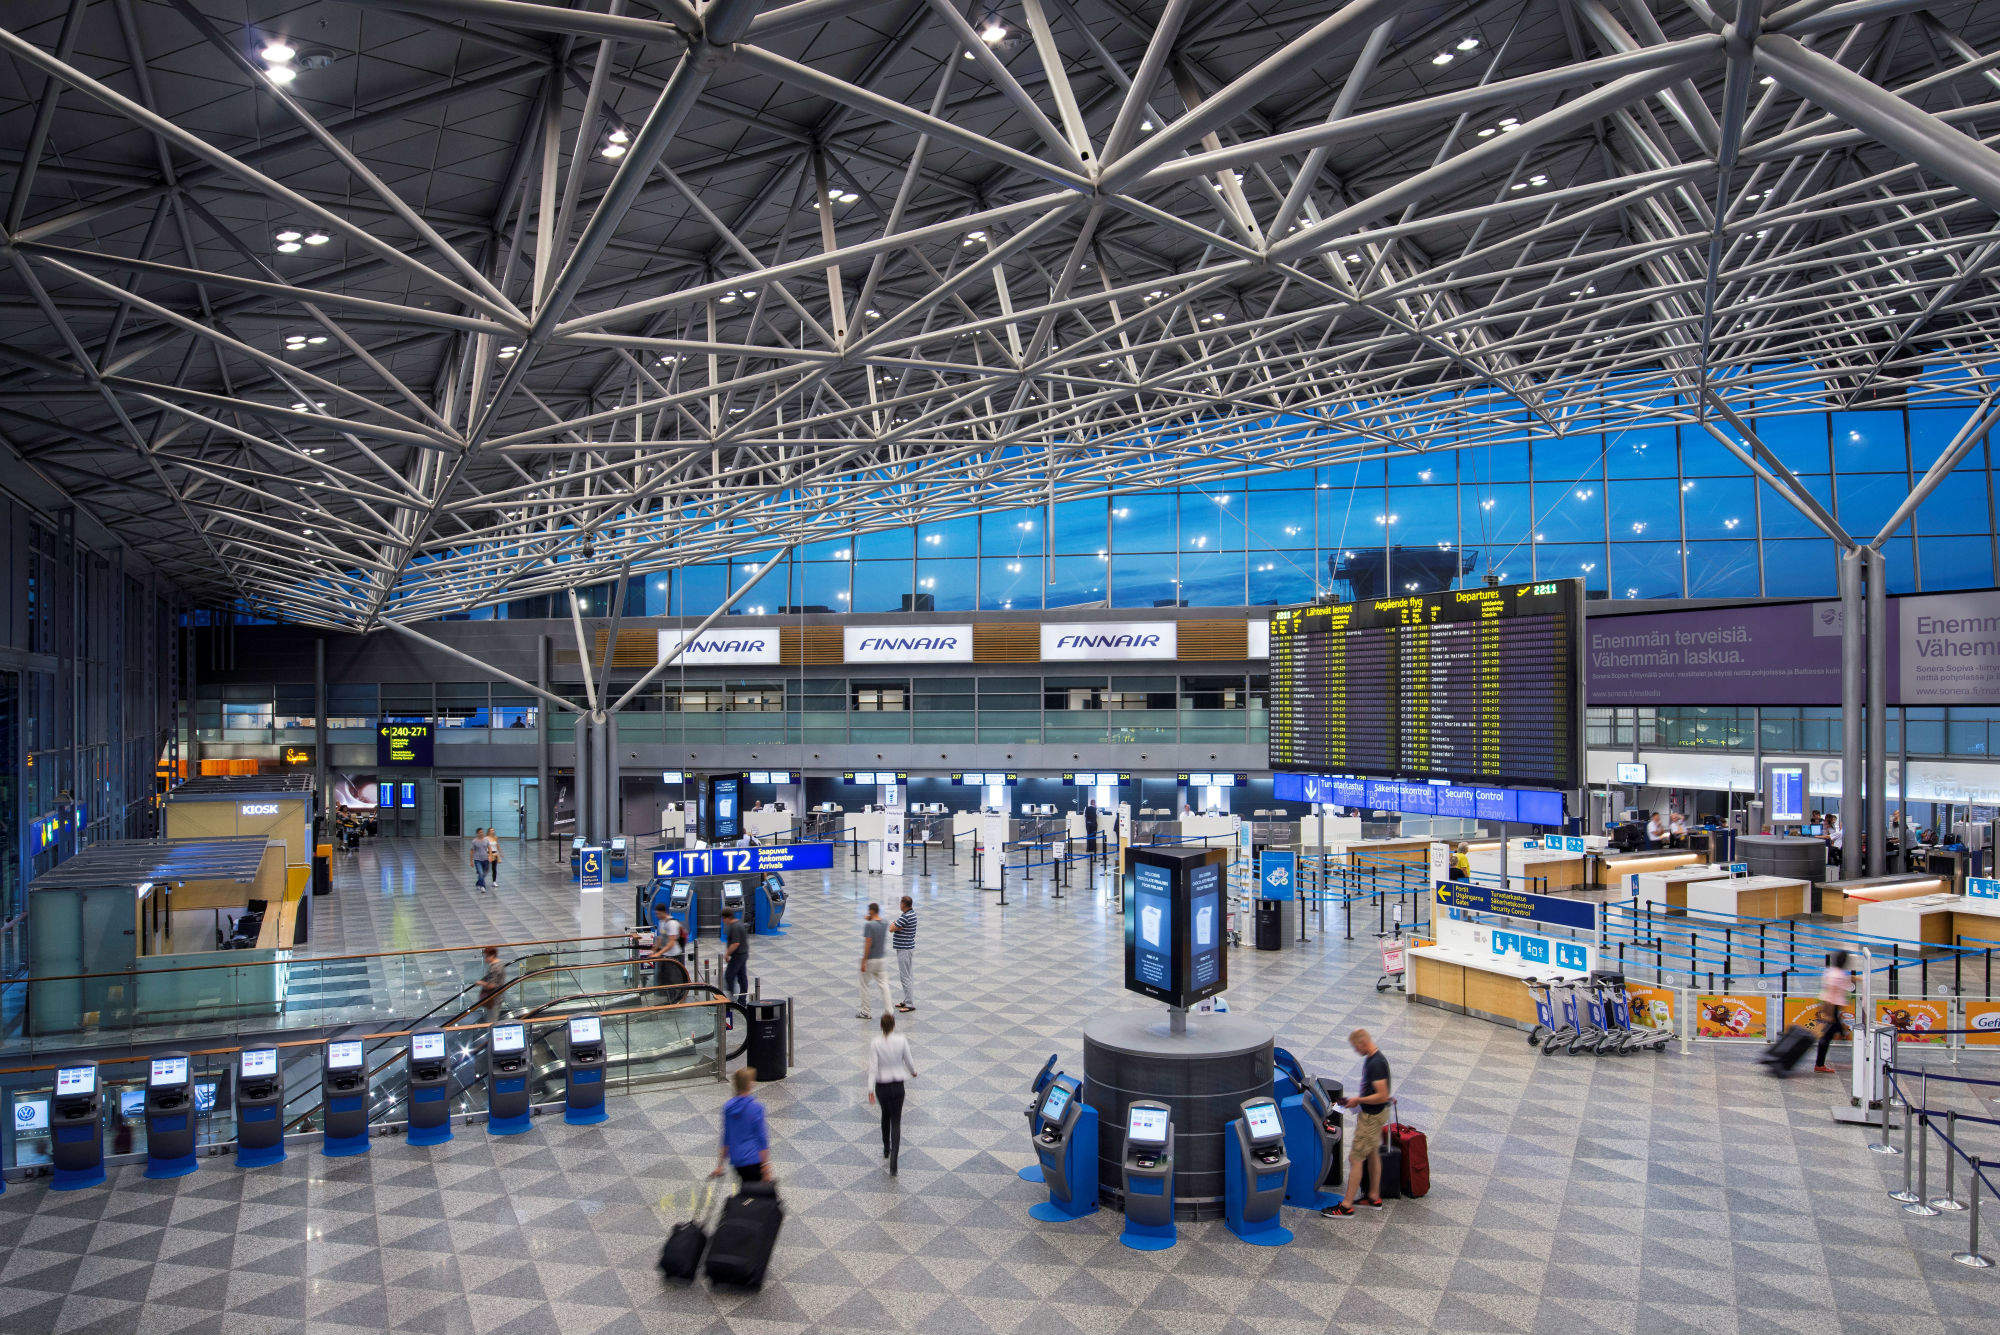 Location-based technology: personalising the airport experience